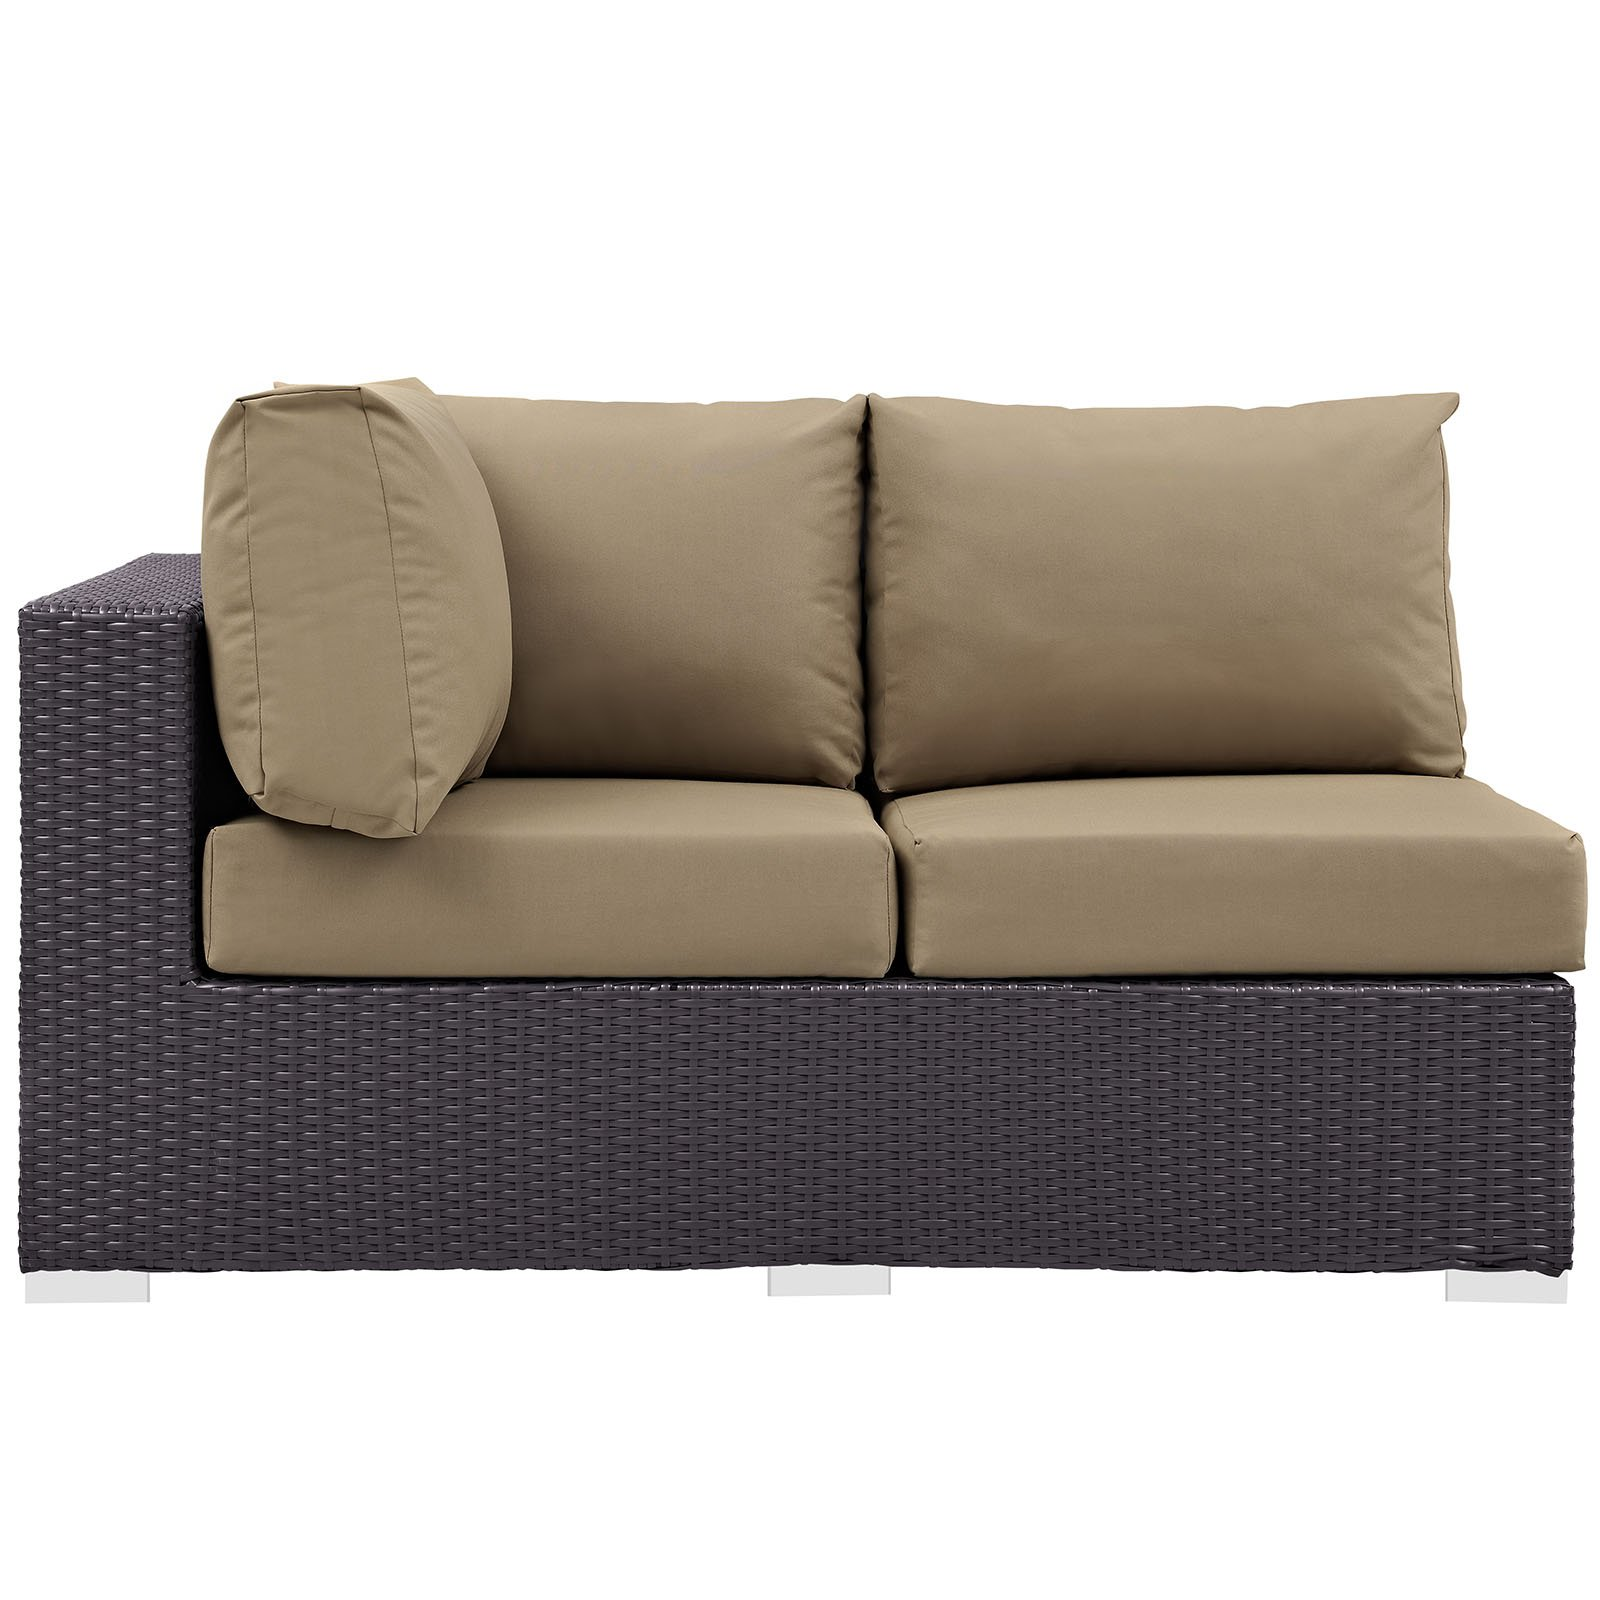 Modway Convene Outdoor Patio Left Arm Loveseat, Multiple Colors